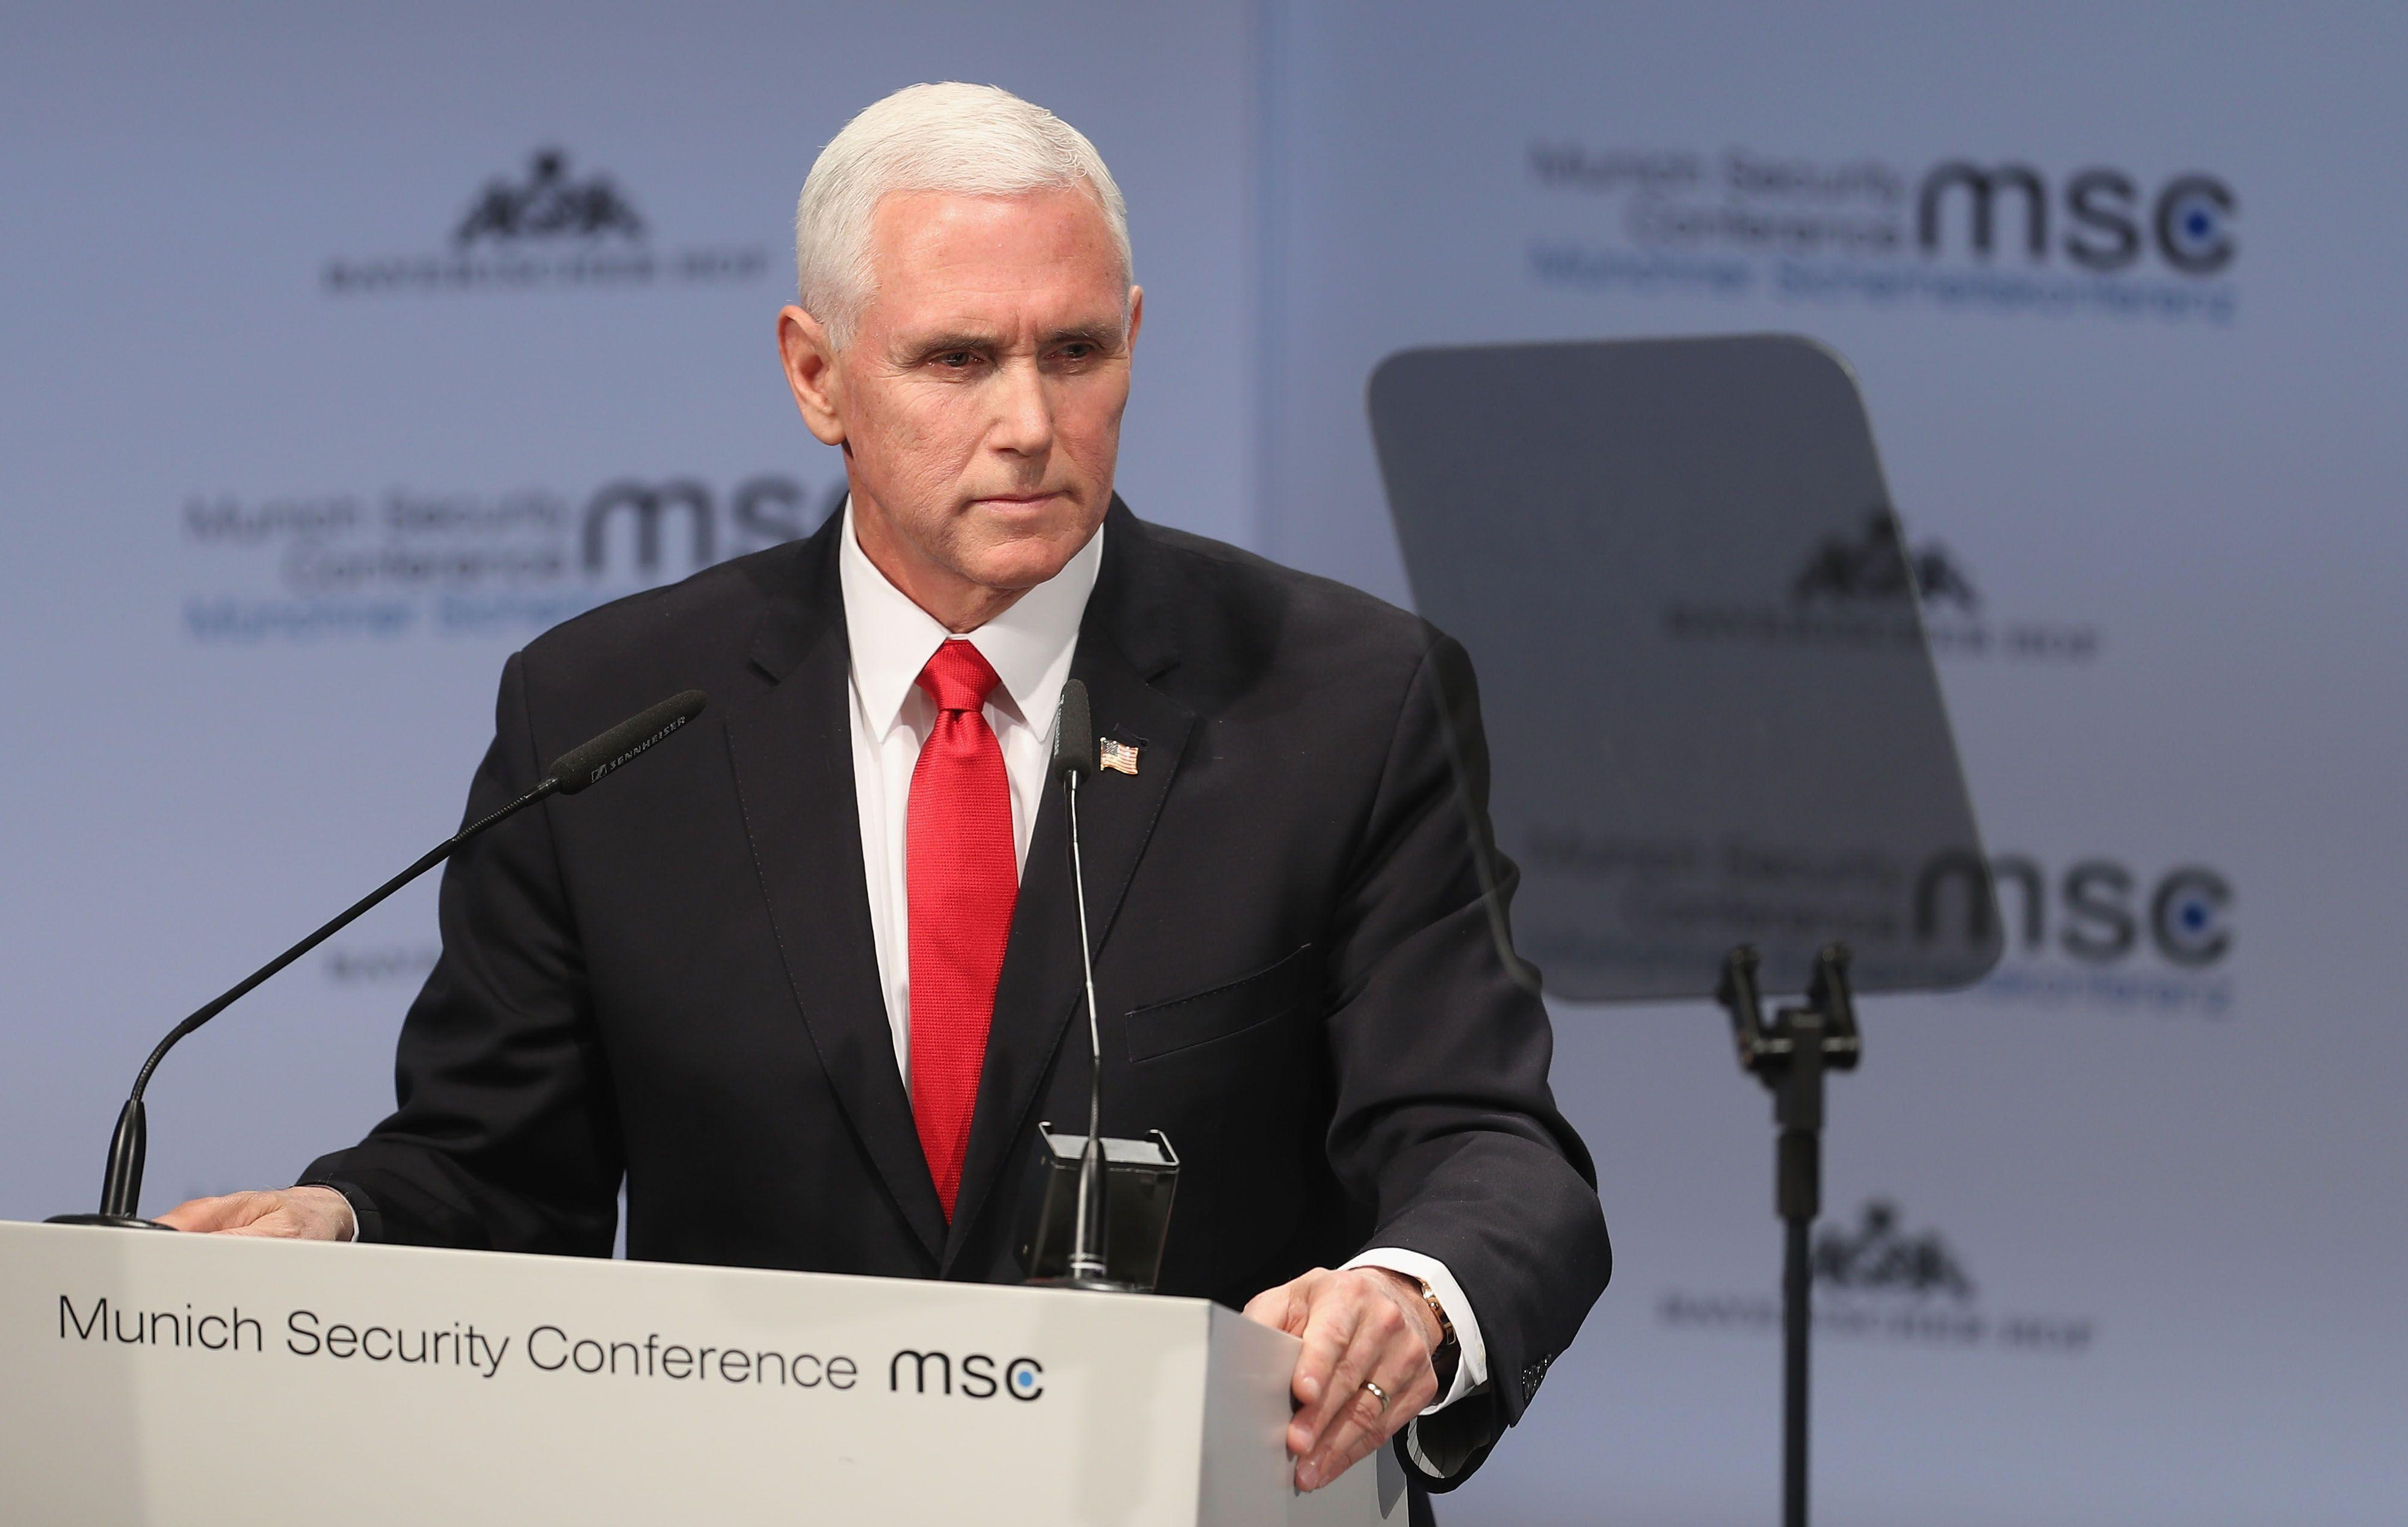 Vice President Pence met with silence after mentioning Trump in a speech